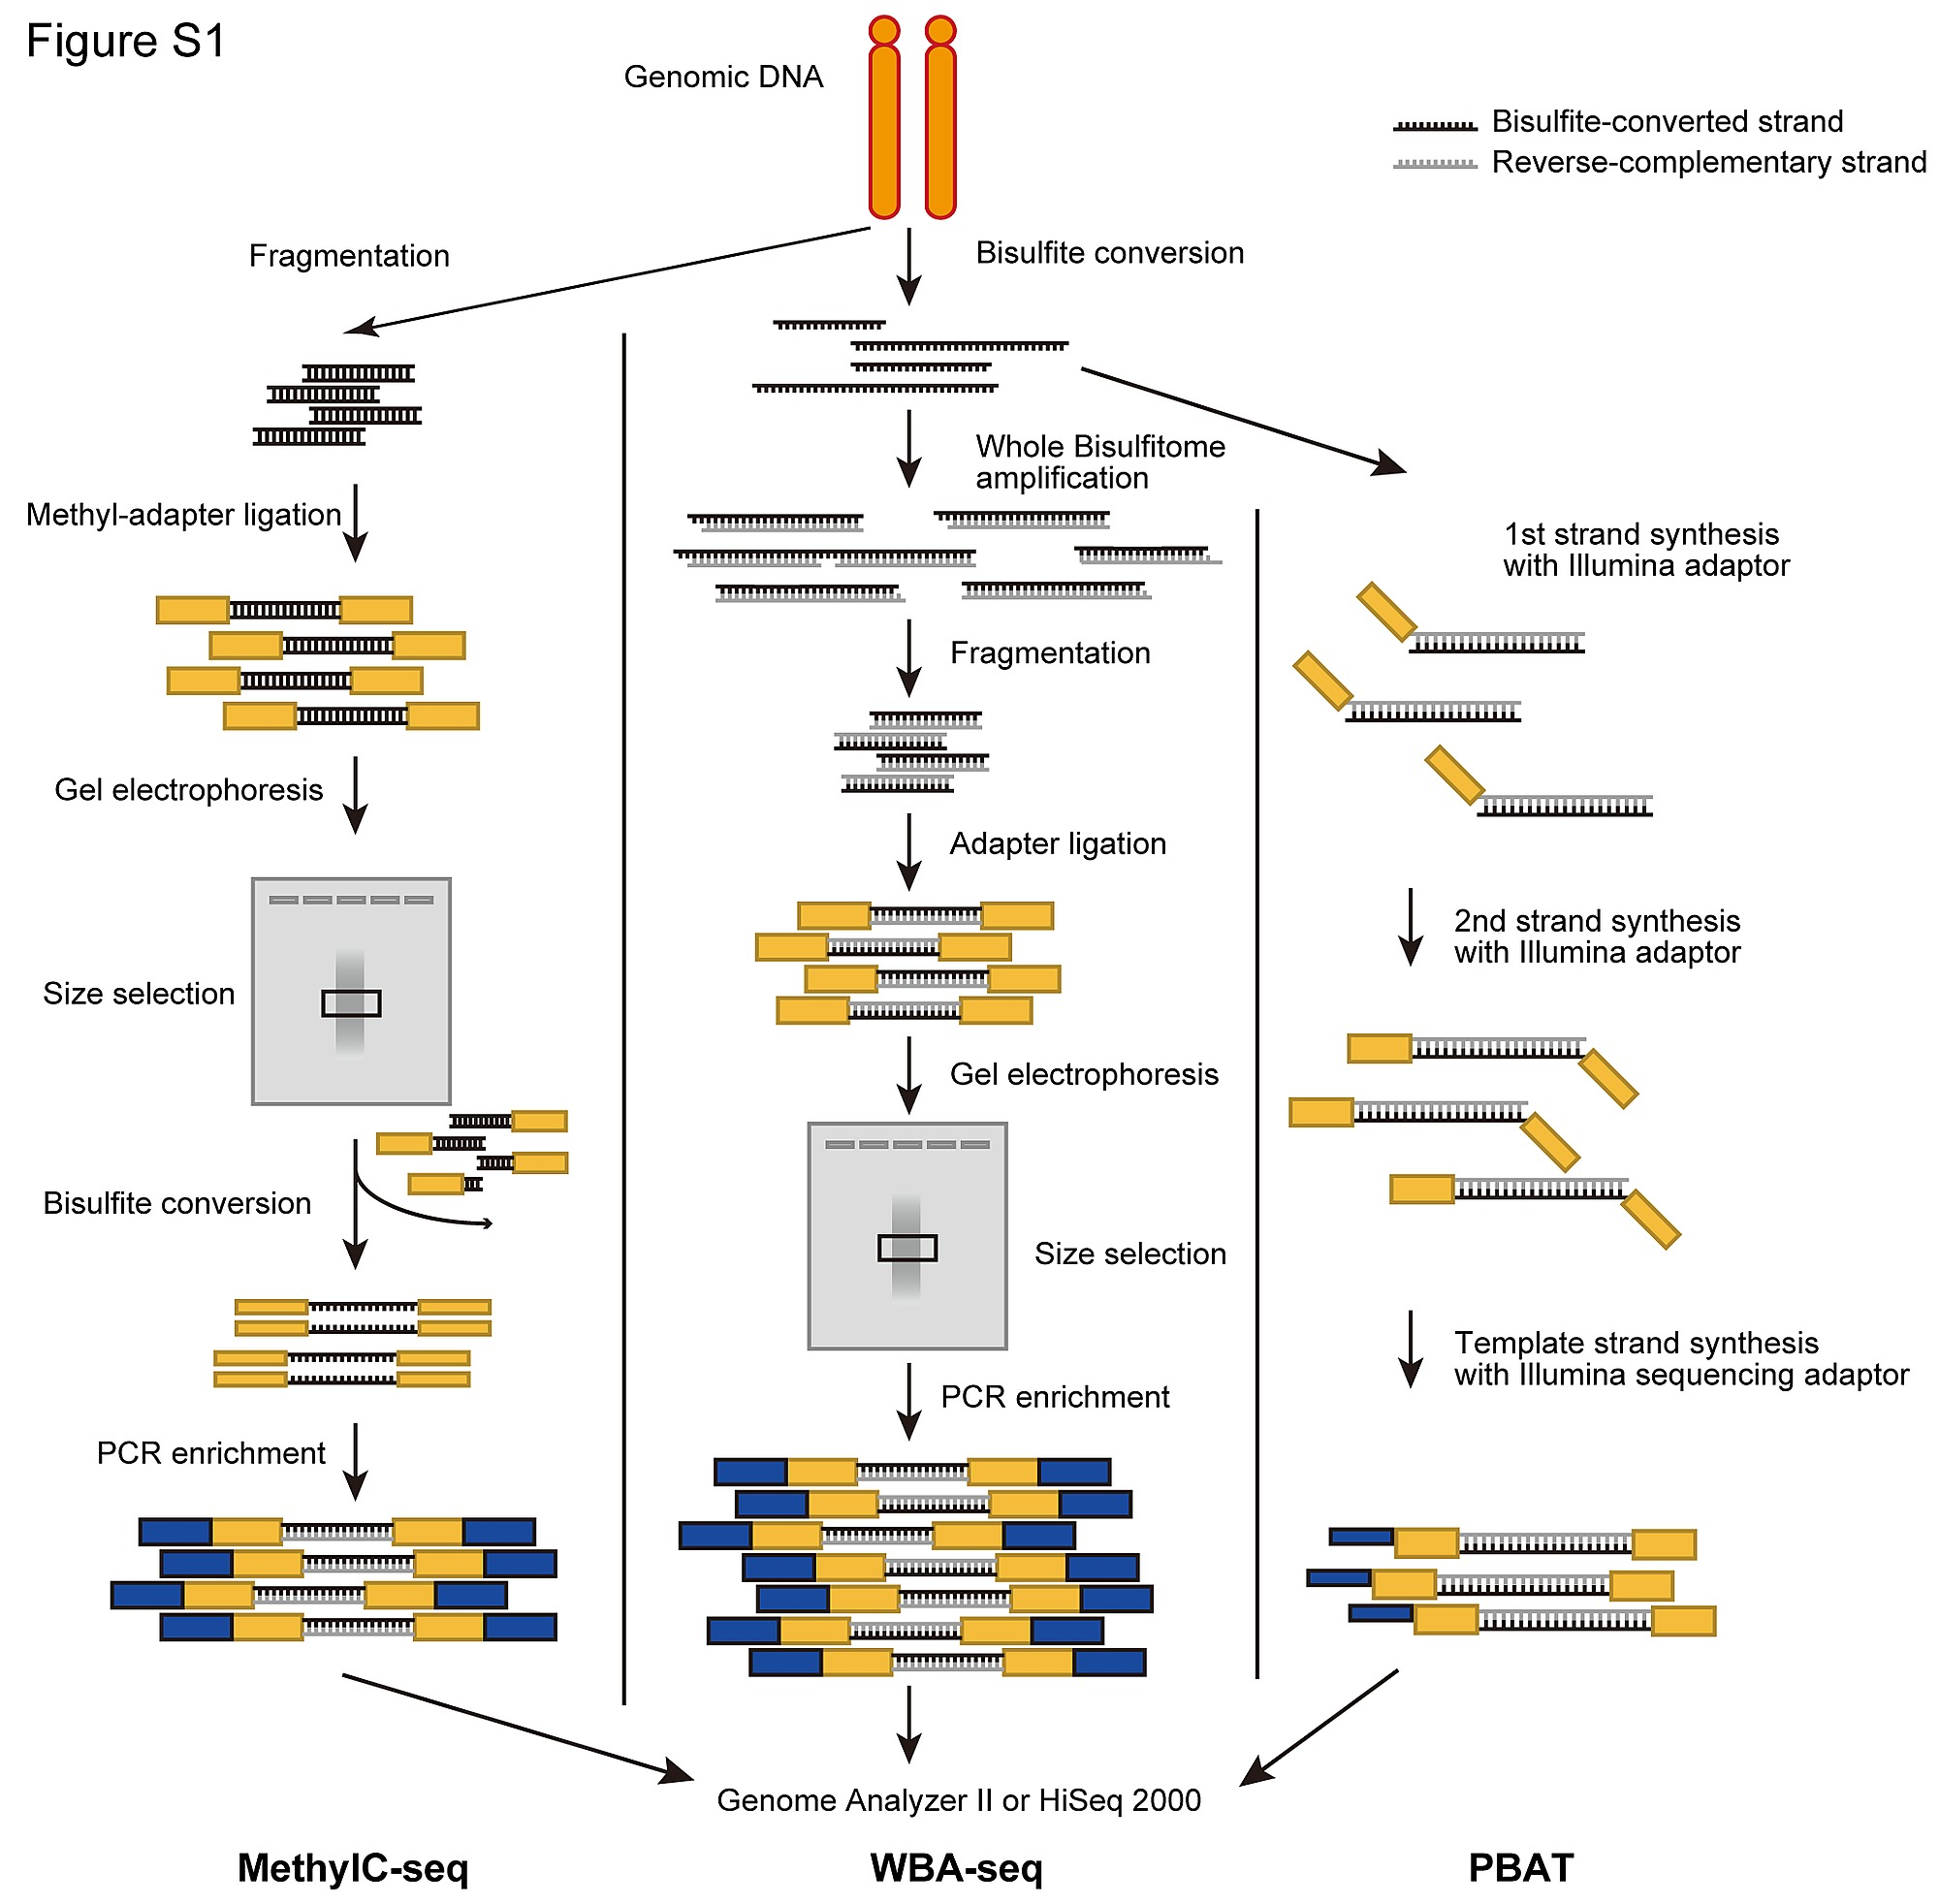 Contribution of Intragenic DNA Methylation in Mouse Gametic